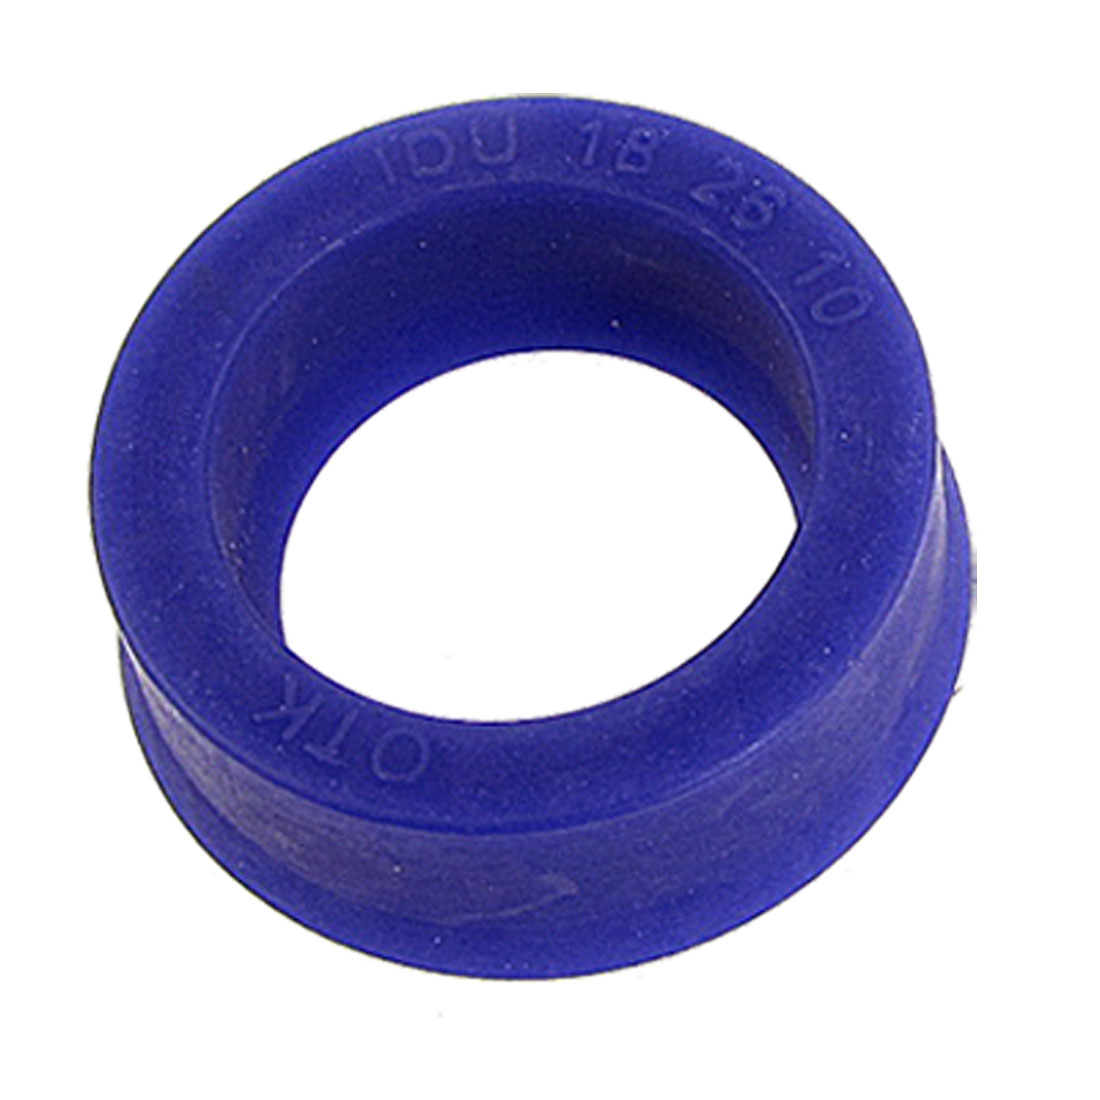 Car Crankshaft Piston Rod PU Oil Grease Seal Sealing Ring 18x26x10mm